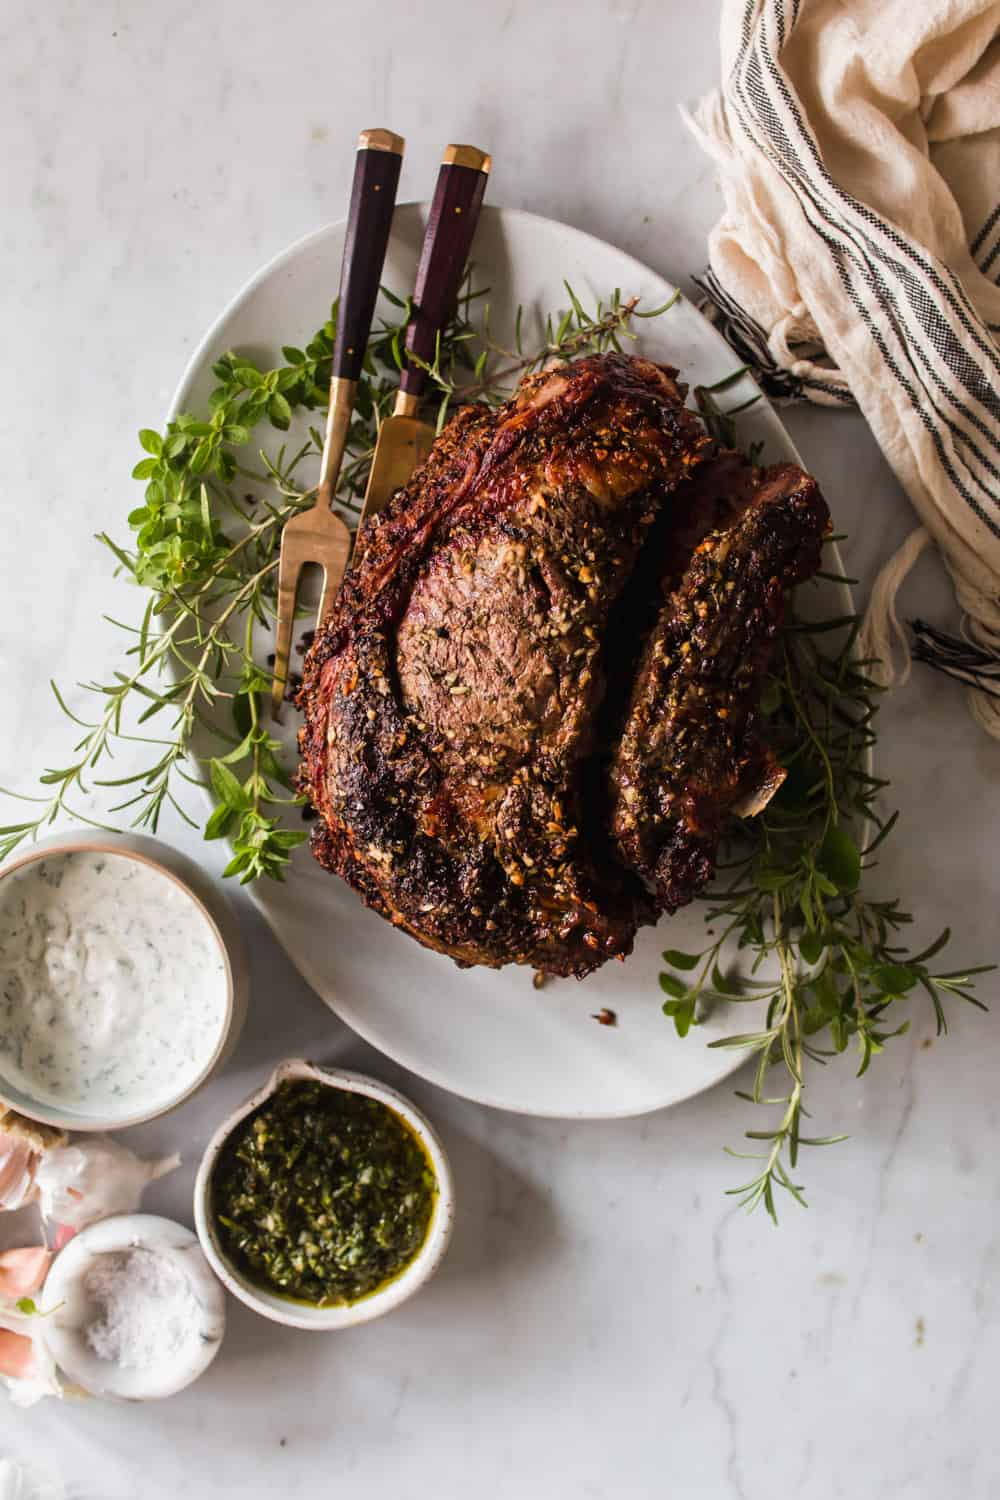 Large beef roast on a white serving plate